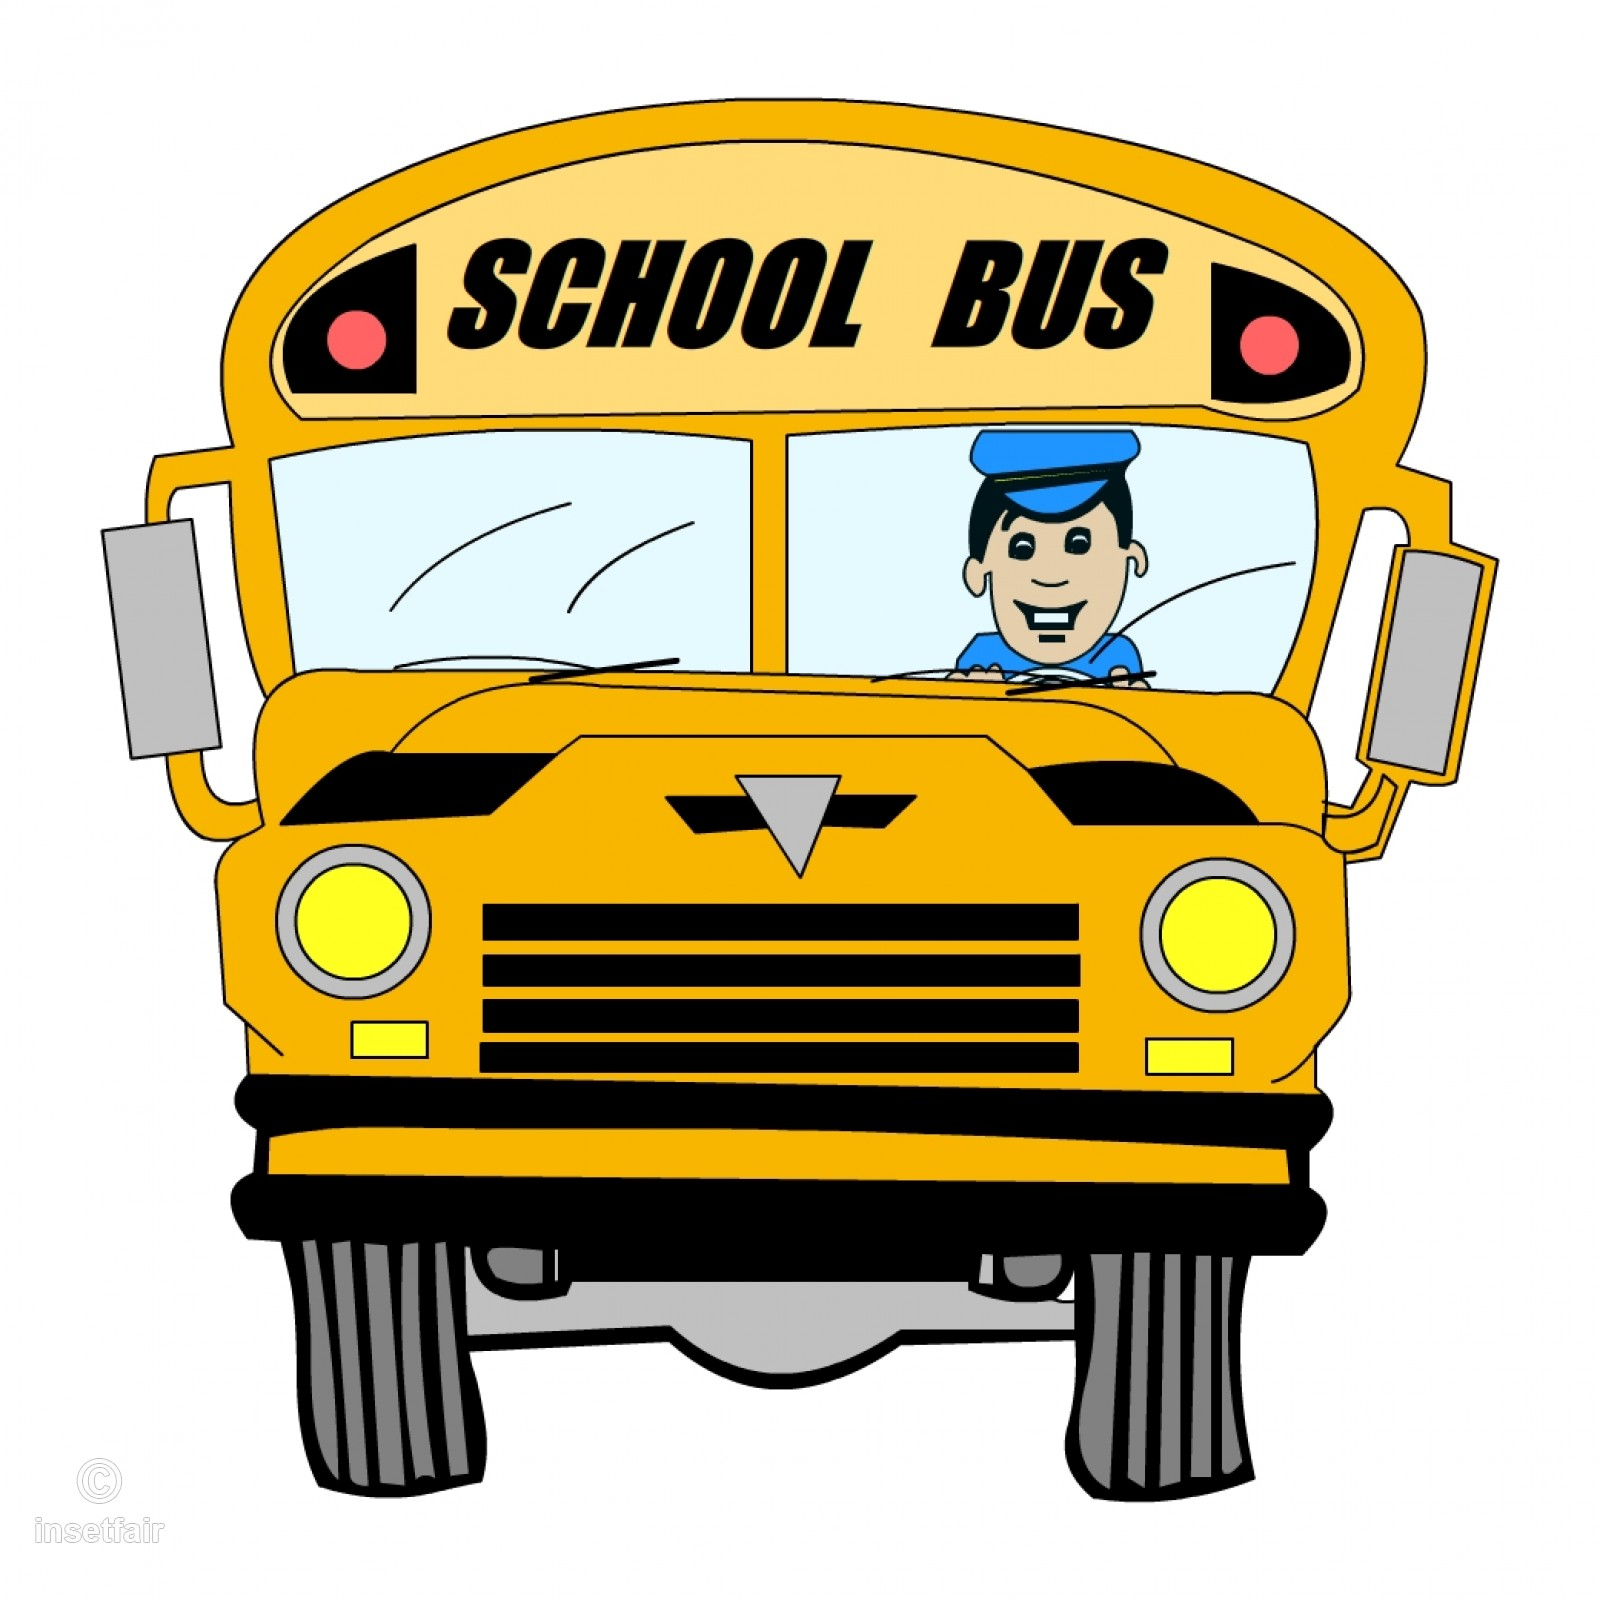 Cartoon school bus with driver clipart png image.